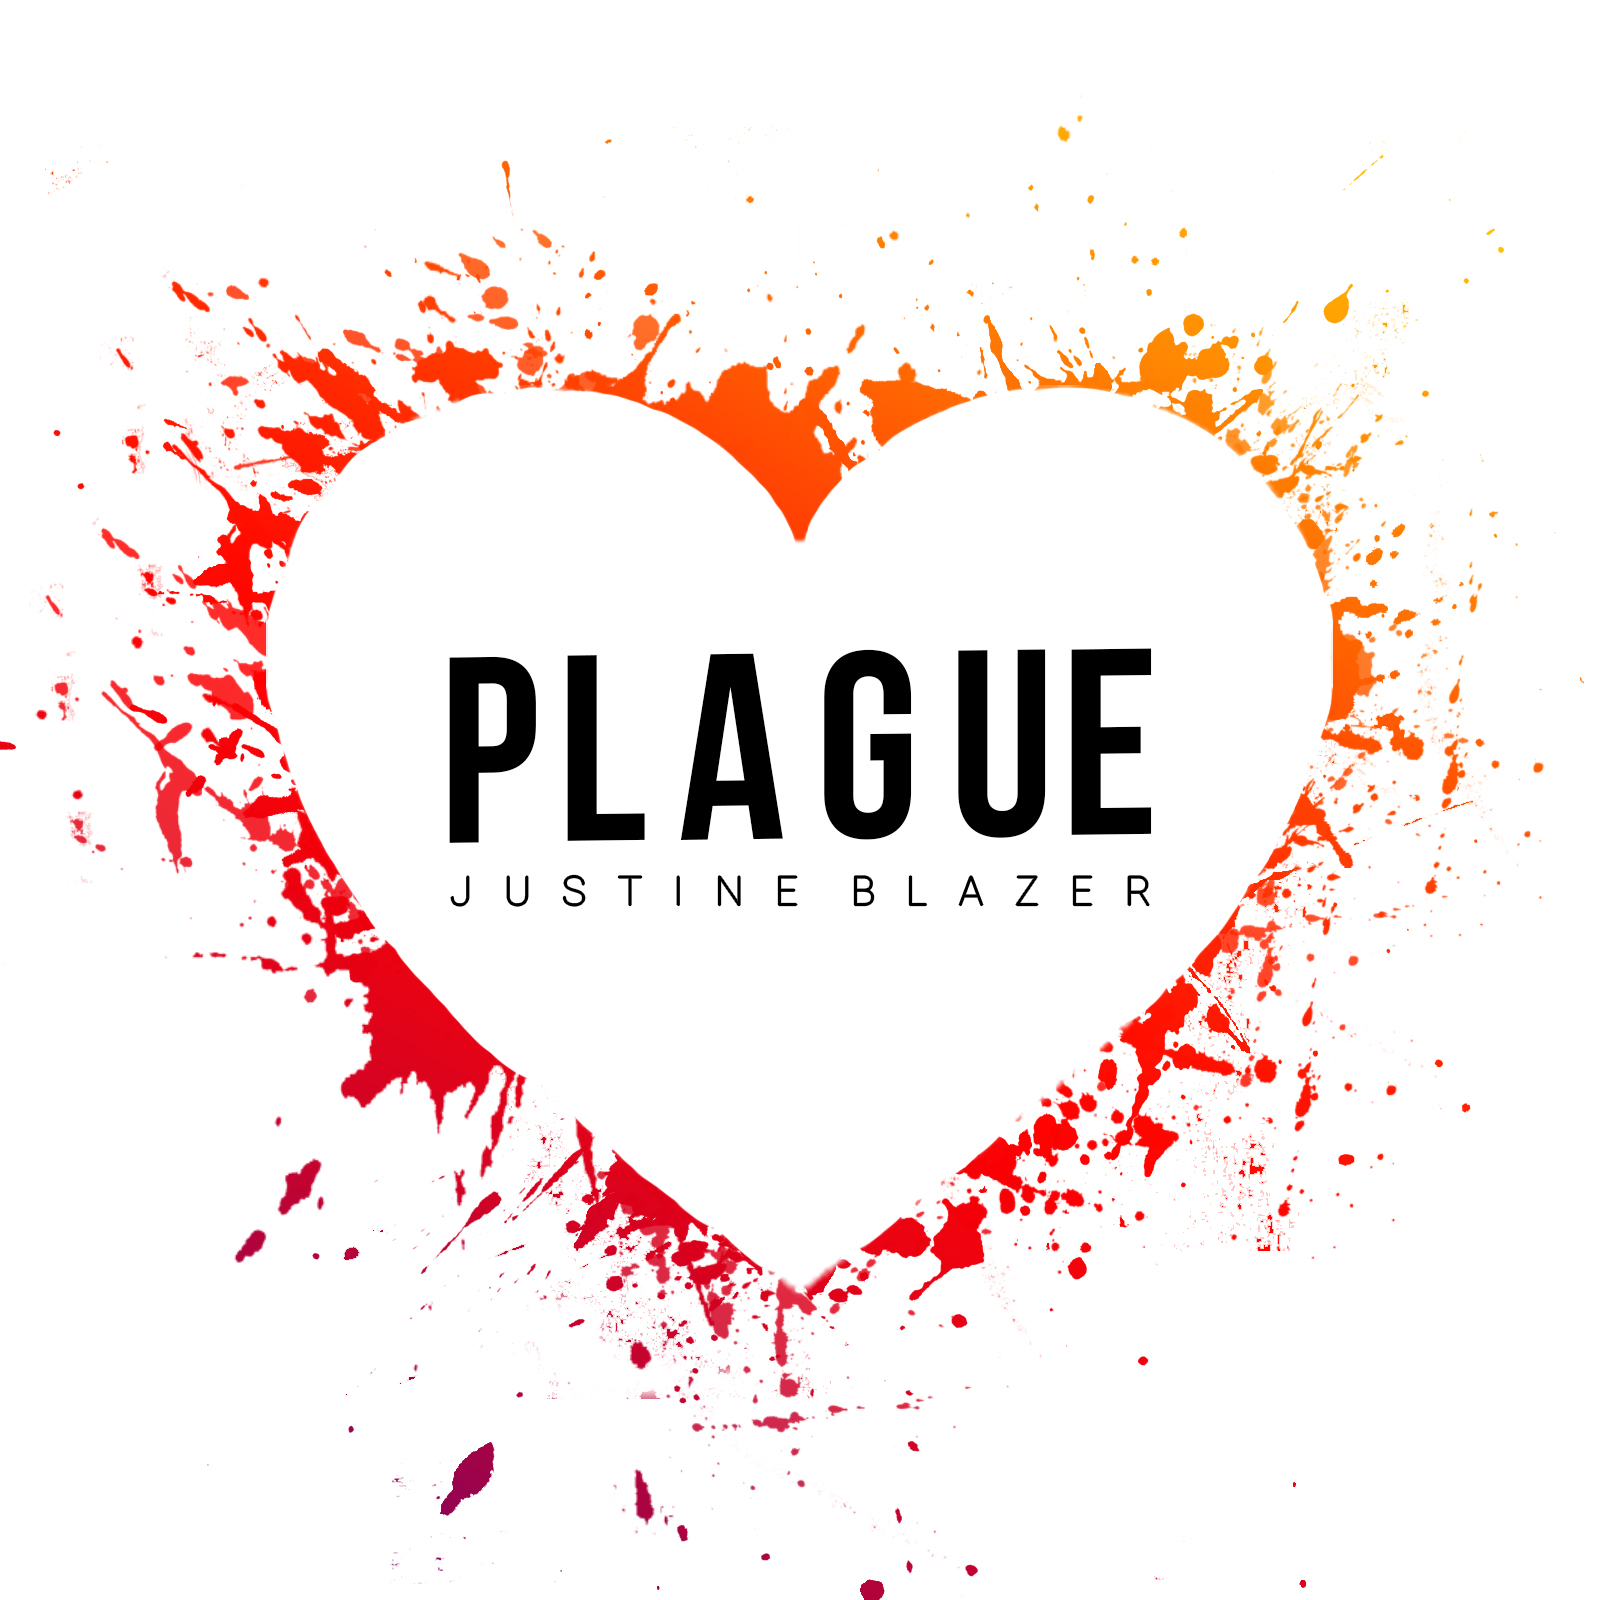 plague by justine blazer